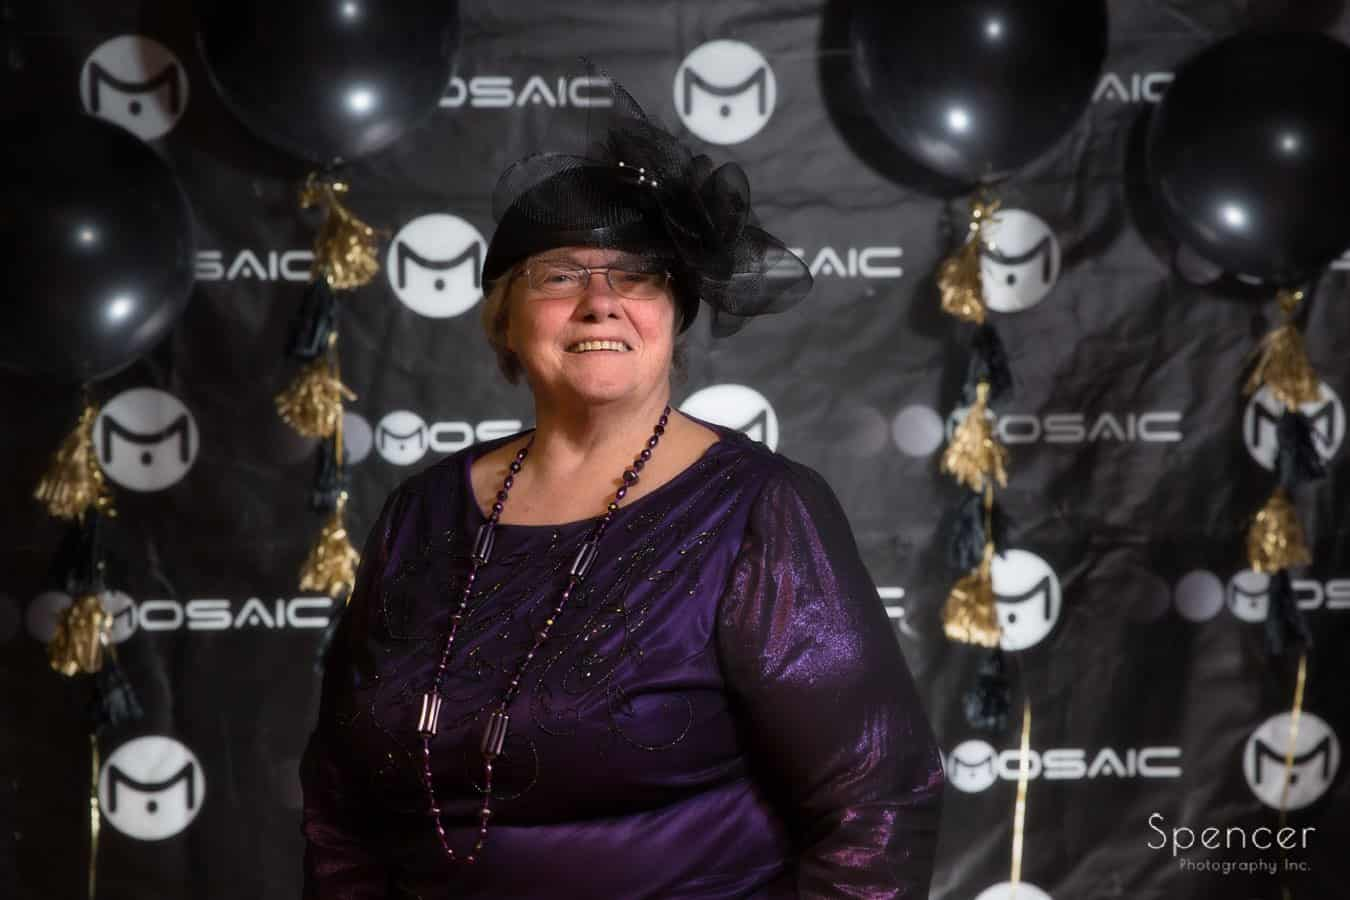 woman in step and repeat at wadsworth awards event